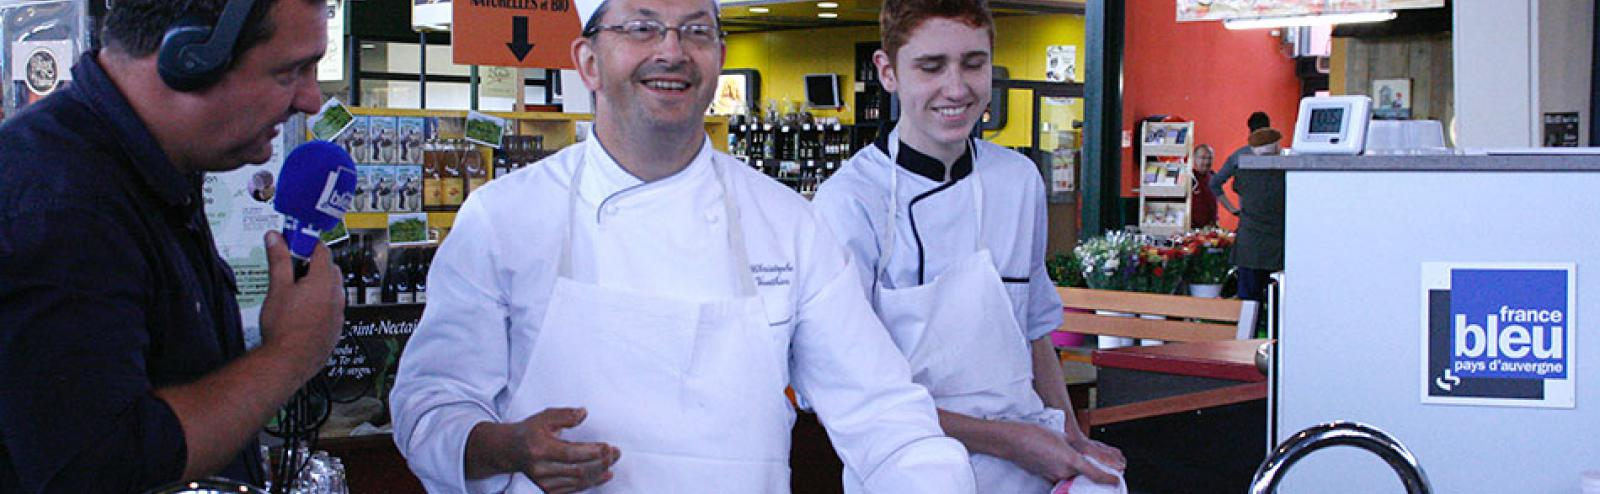 Atelier culinaire, Chef Christophe Vauthier